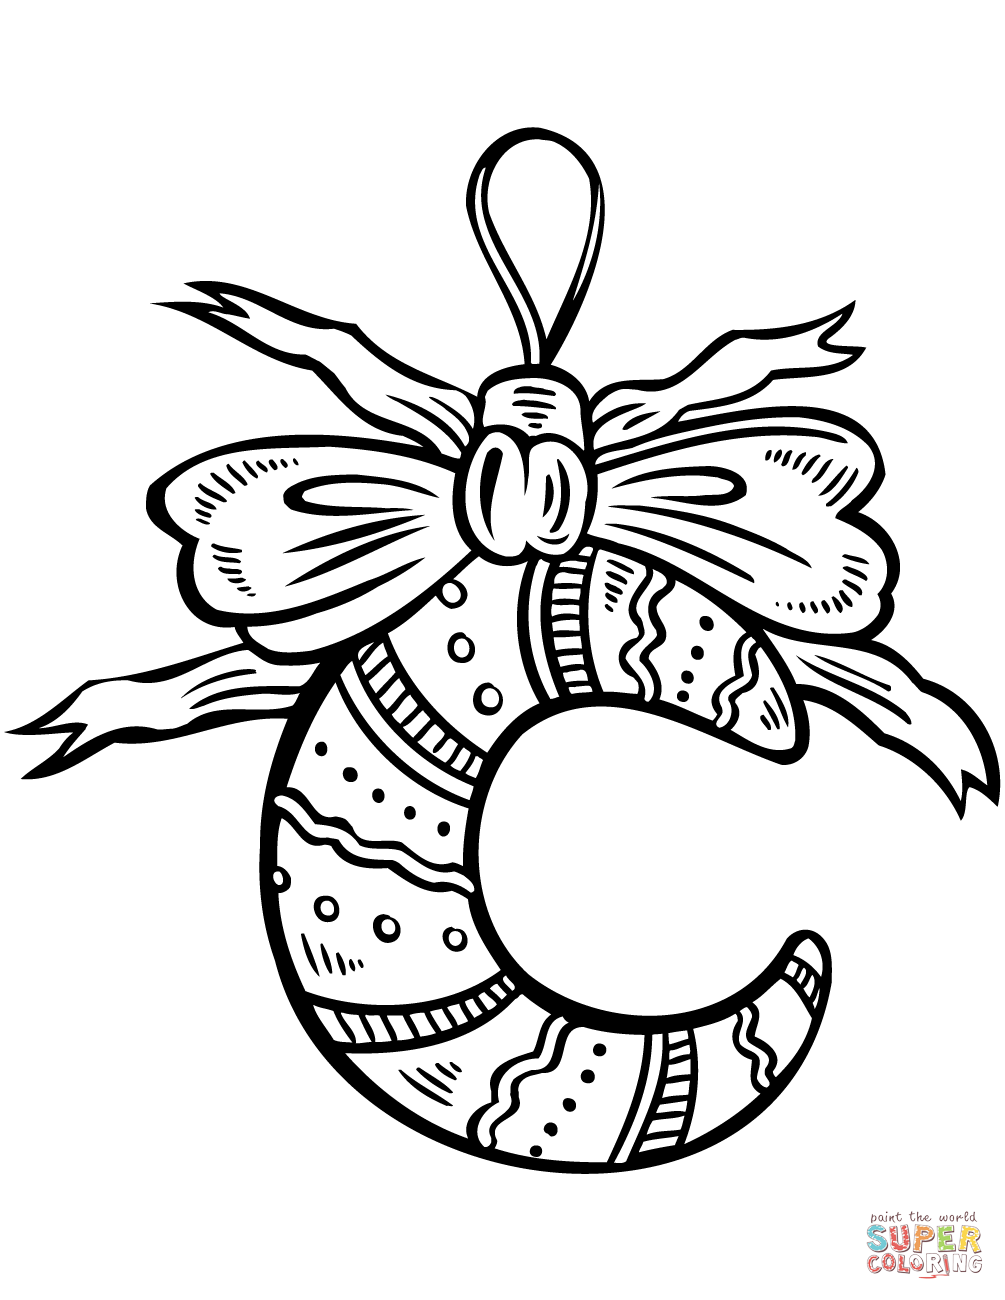 Crescent Moon Christmas Ornament Coloring Page Free